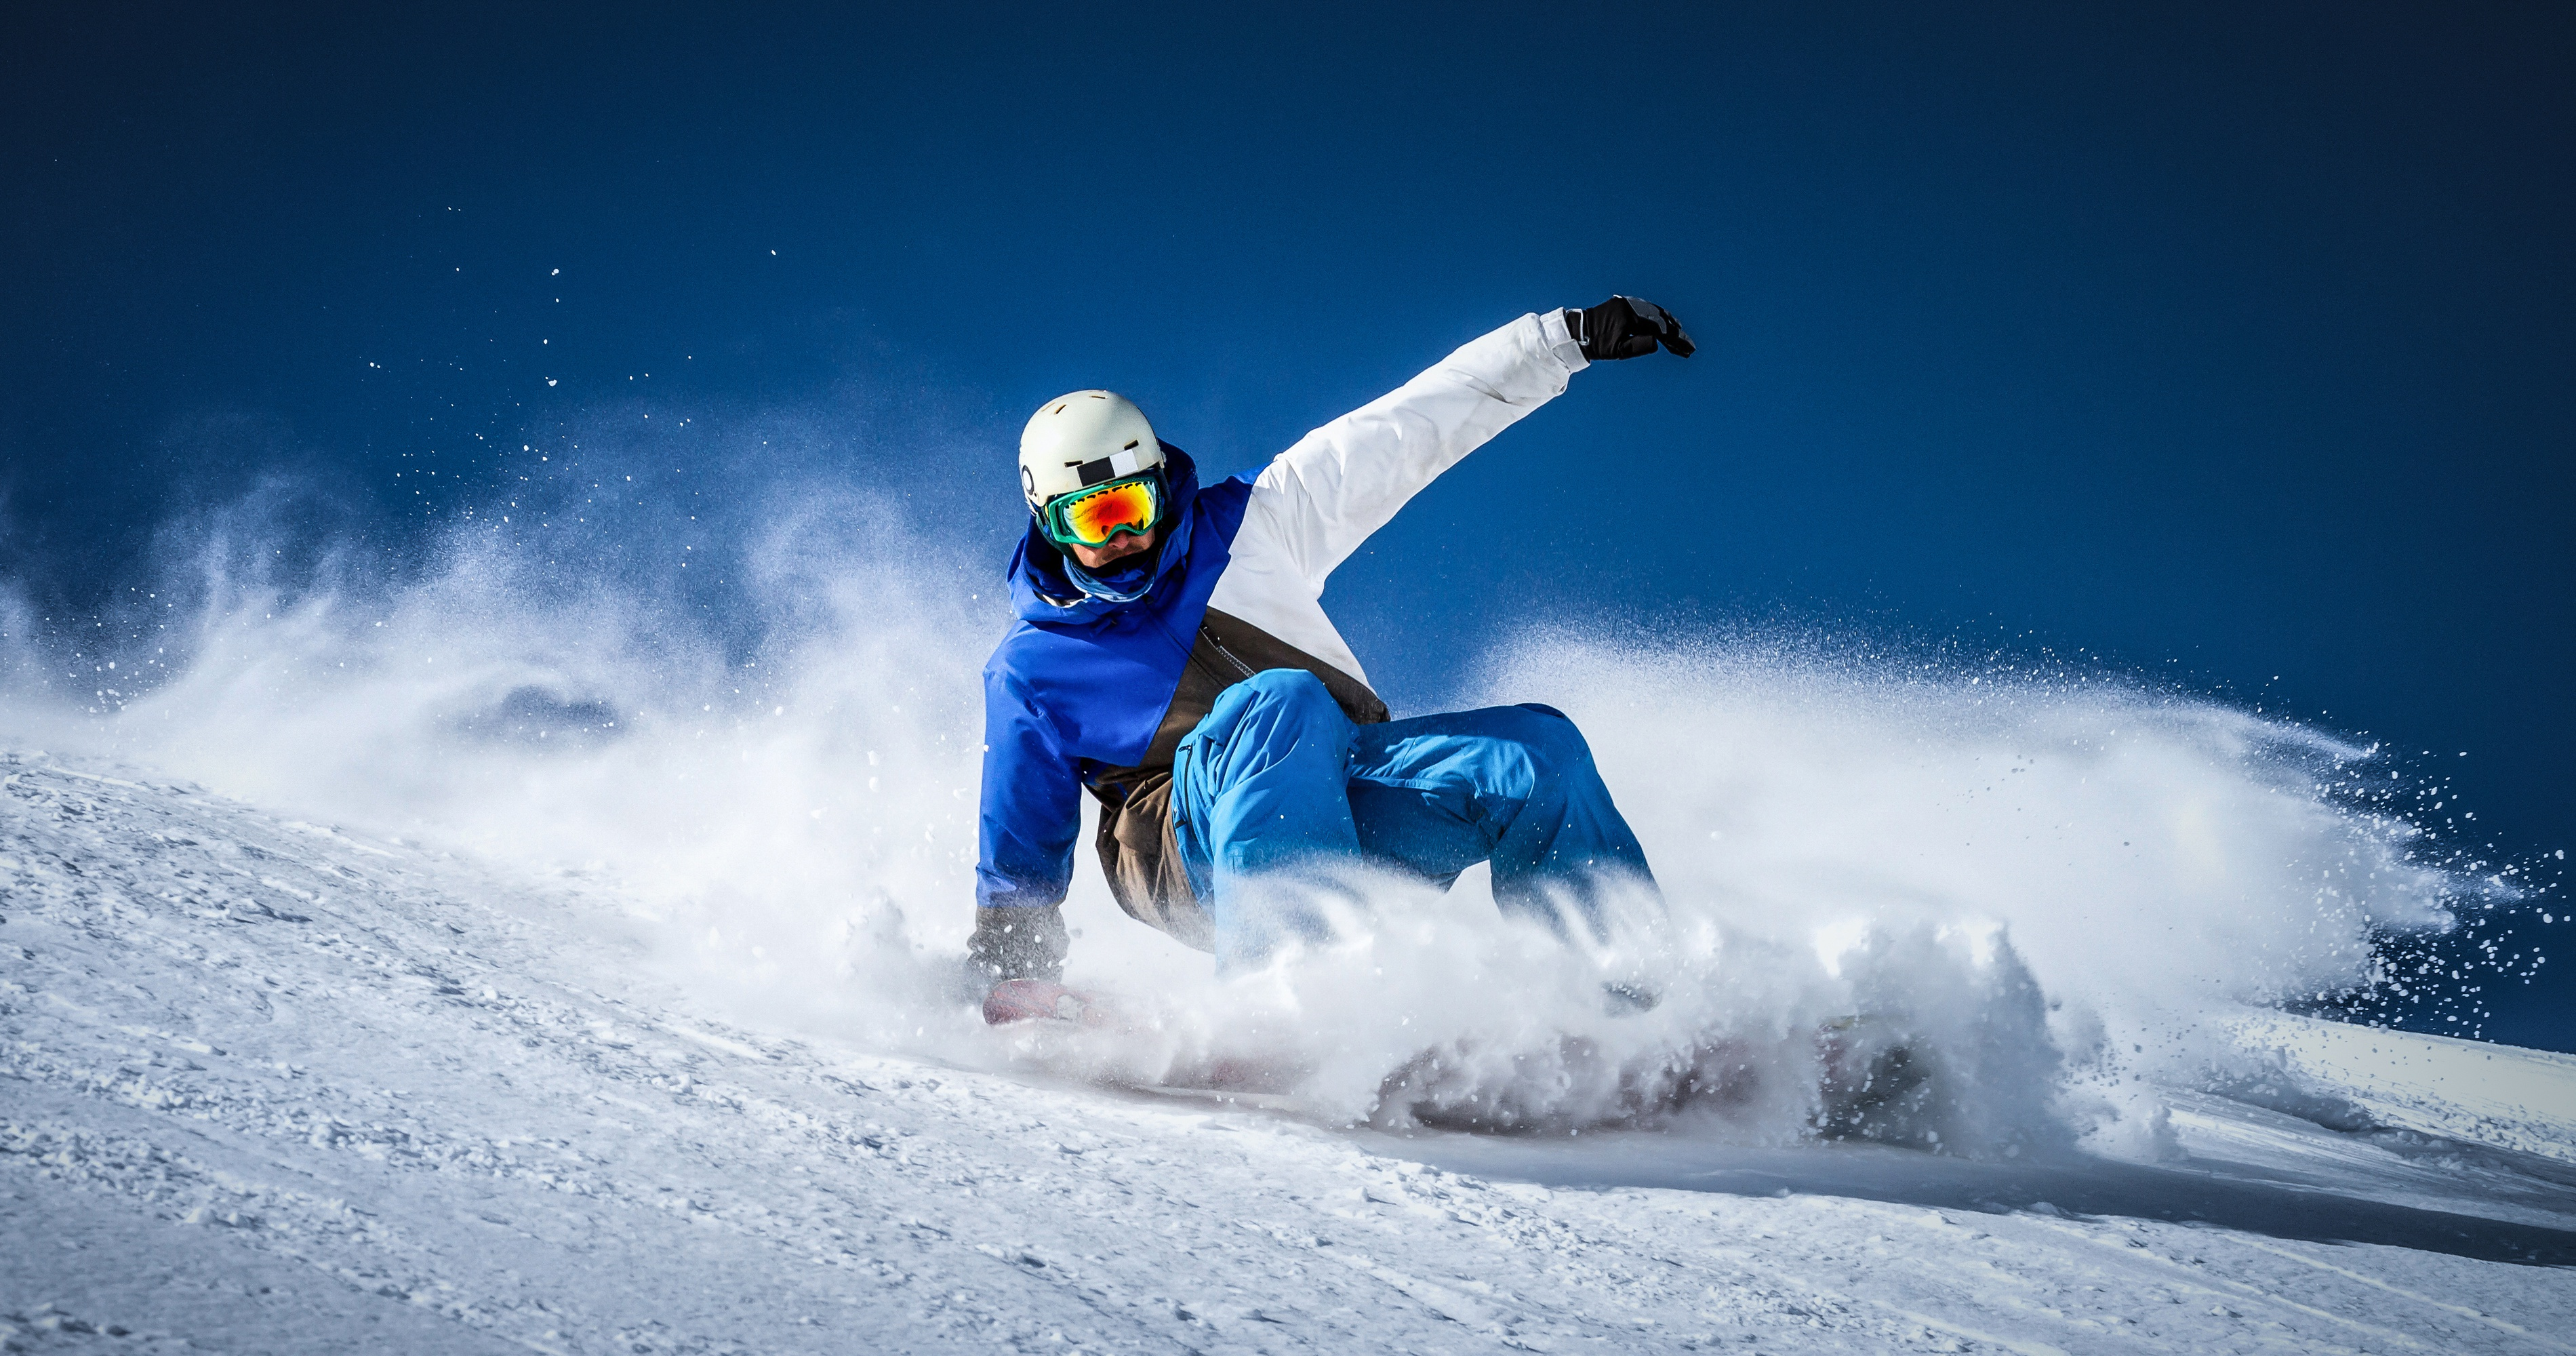 3800x2000 - Snowboarding Wallpapers 8